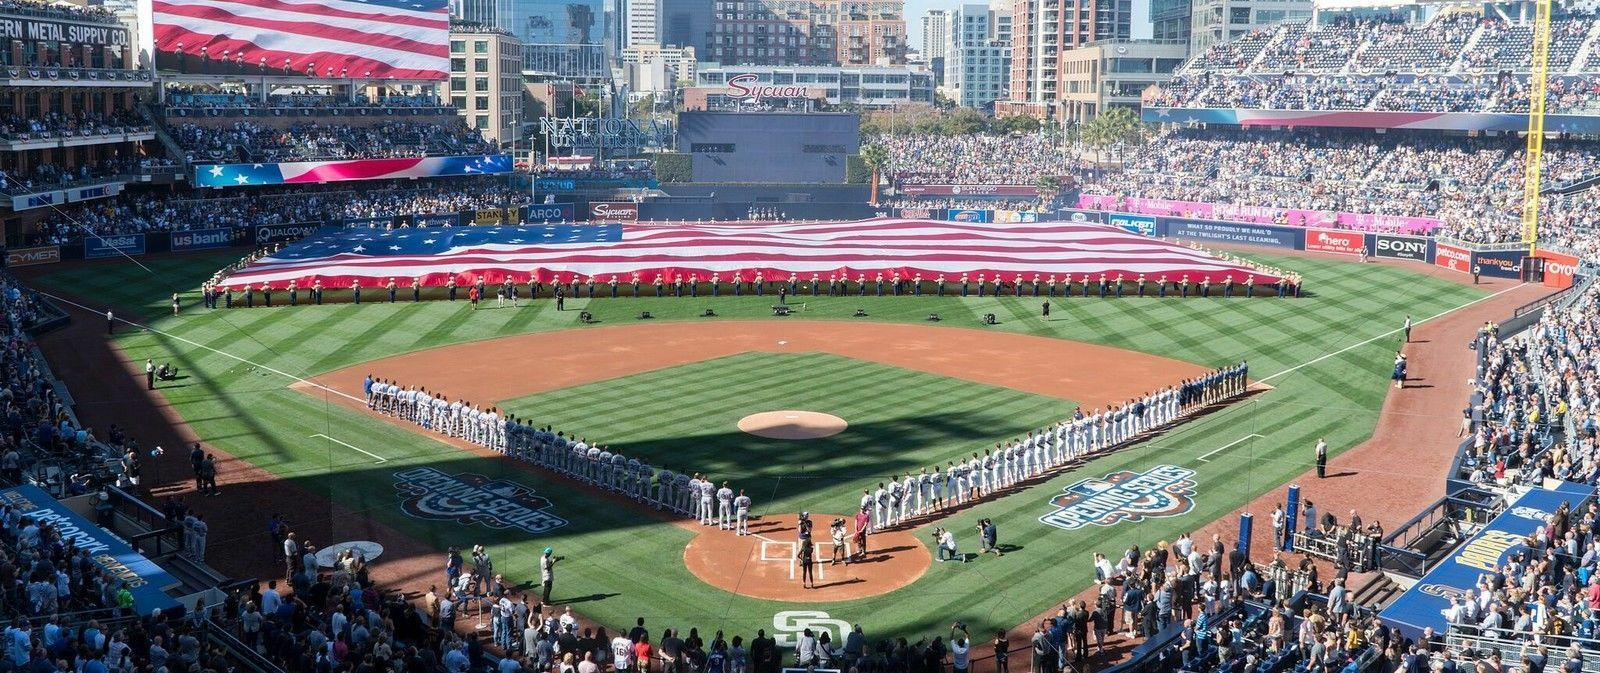 Colorado Rockies at San Diego Padres Tickets (Team Photo and Schedule Giveaway and Fireworks)